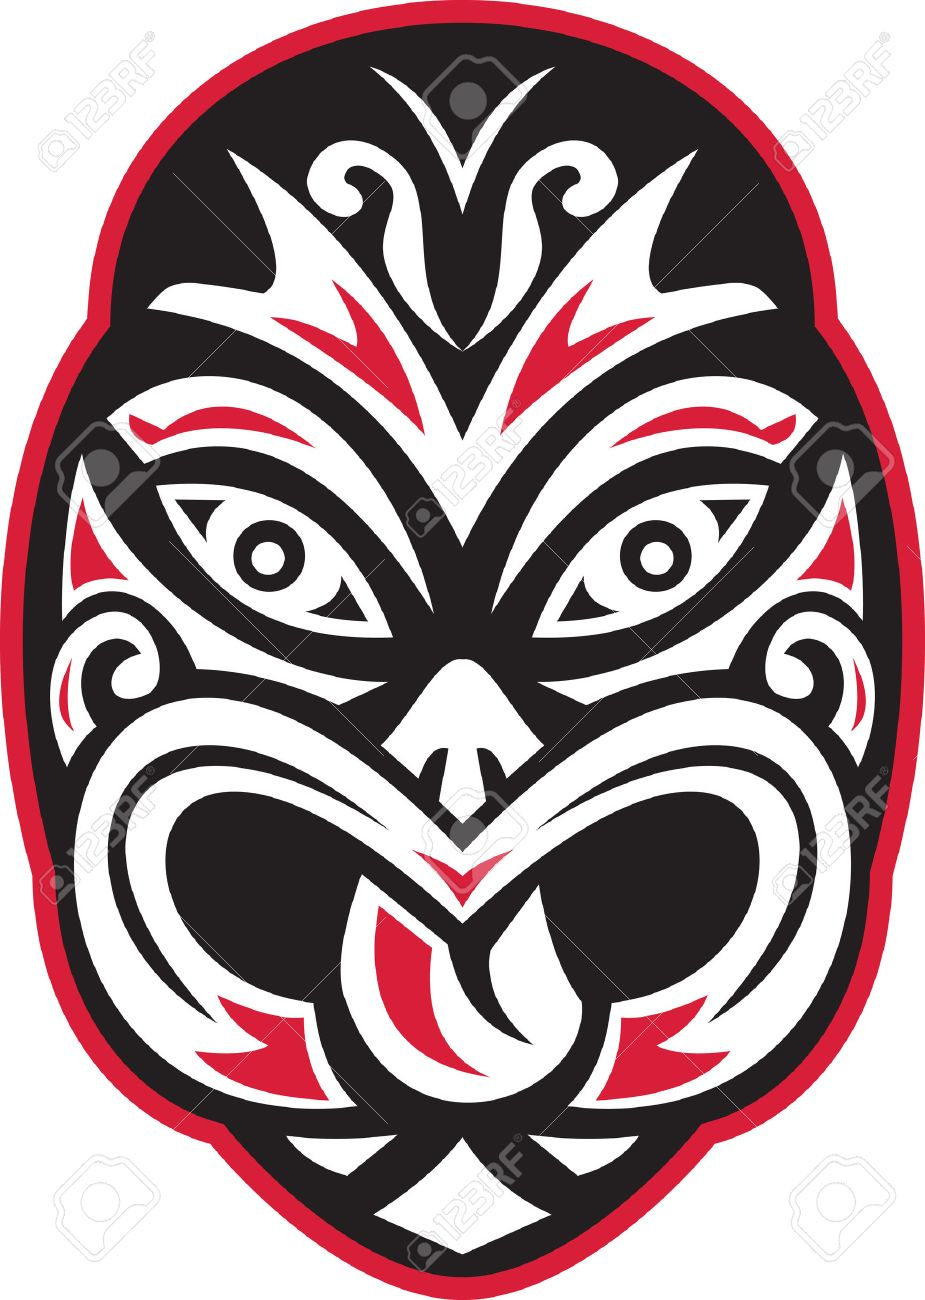 Illustration of a maori tiki moko tattoo mask facing front on isolated white background done in retro style. Stock Vector - 36833893